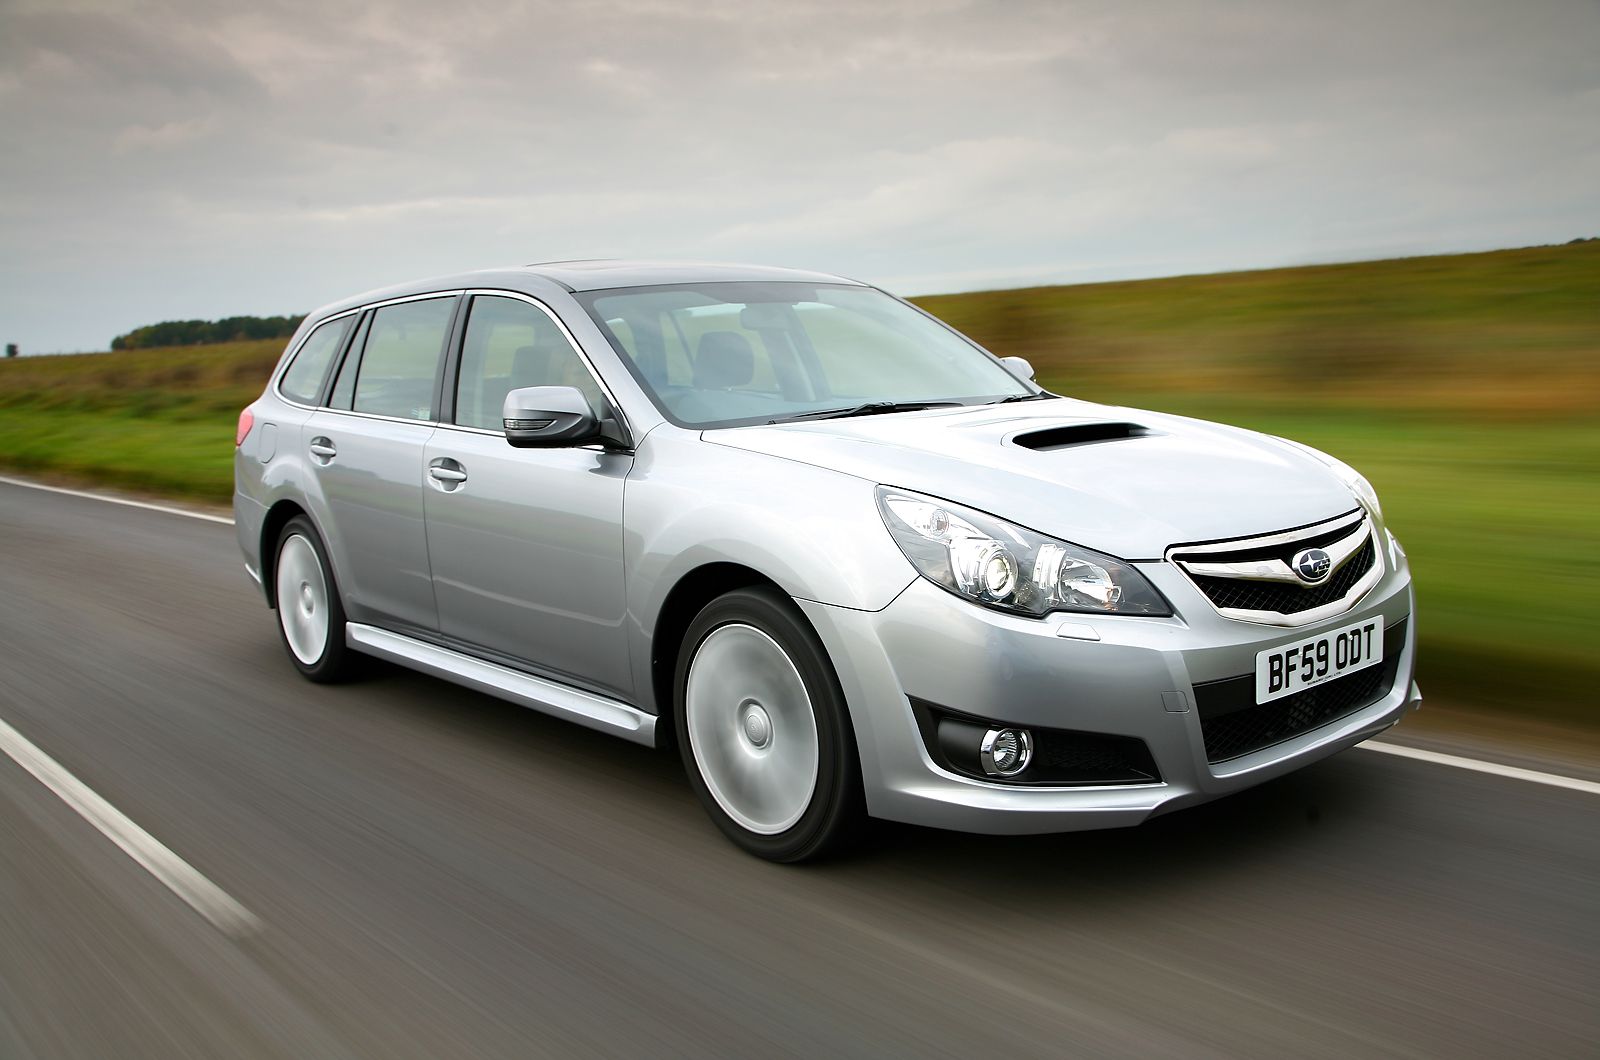 Subaru Outback Used Car Review